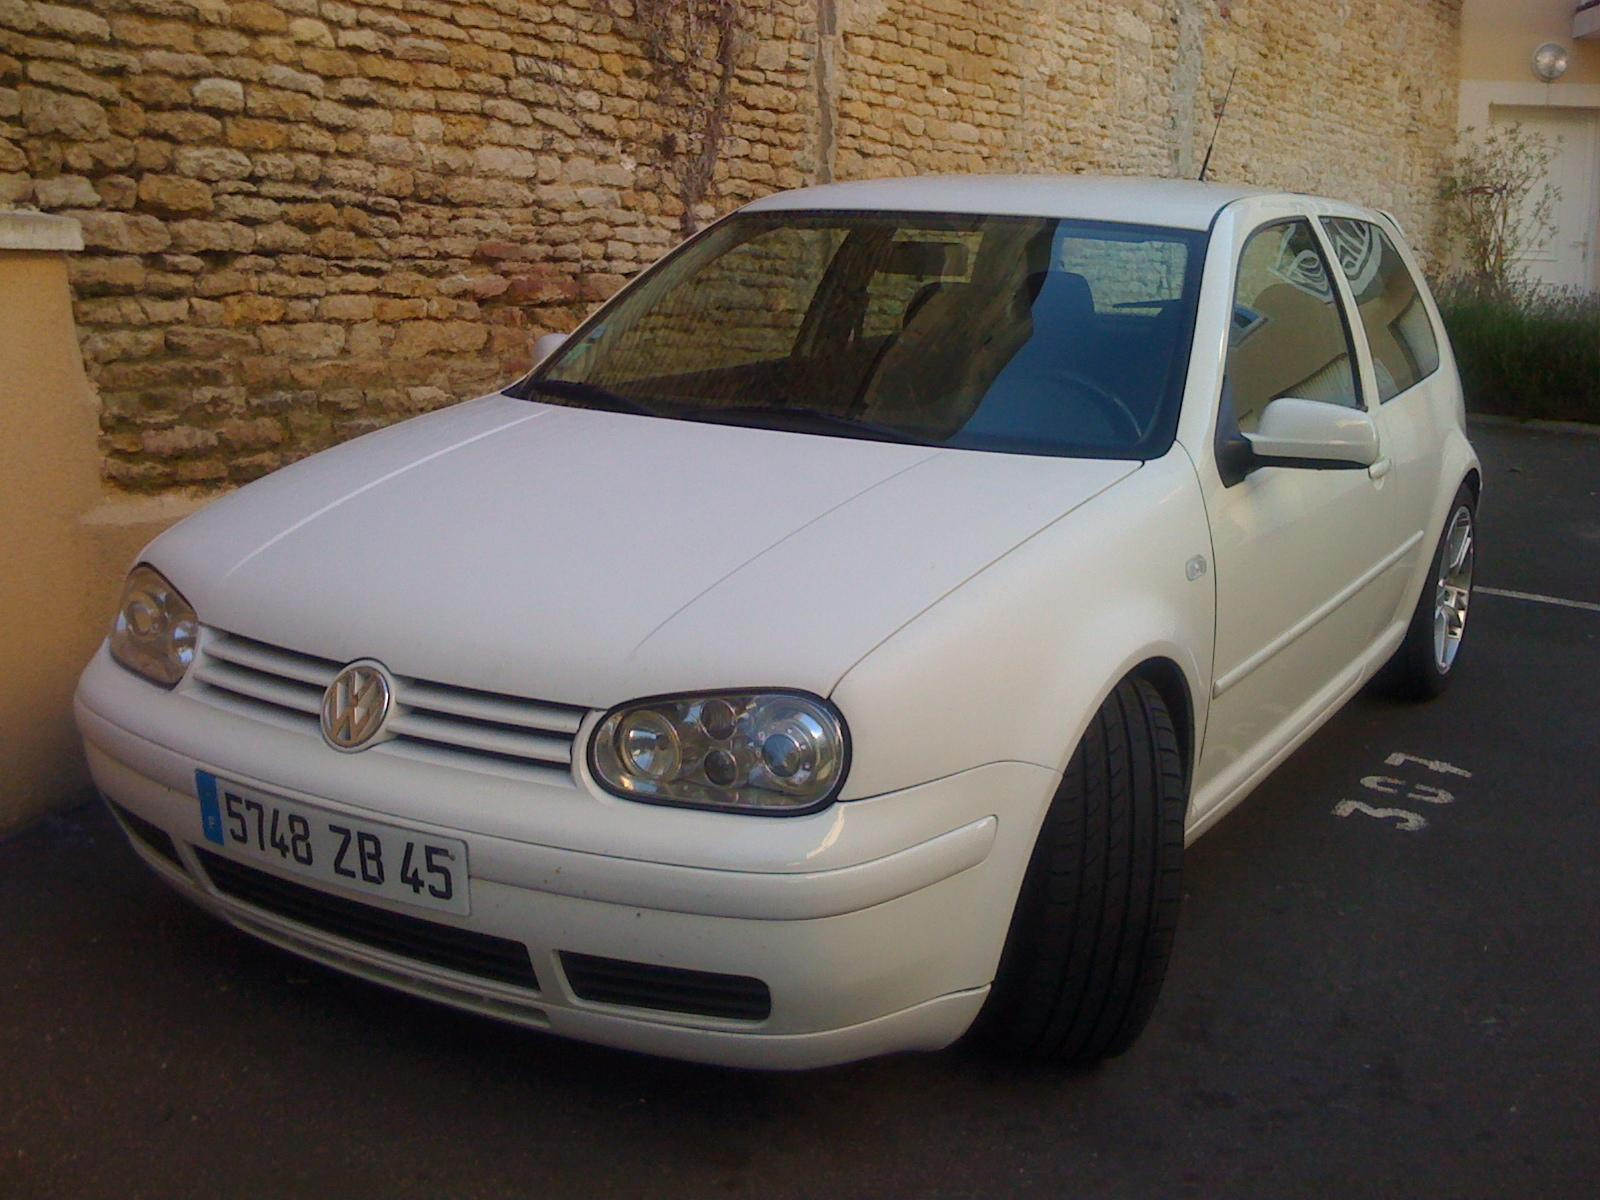 pr u00e9sentation de ma golf iv 1 9 tdi 110 cv pack confort